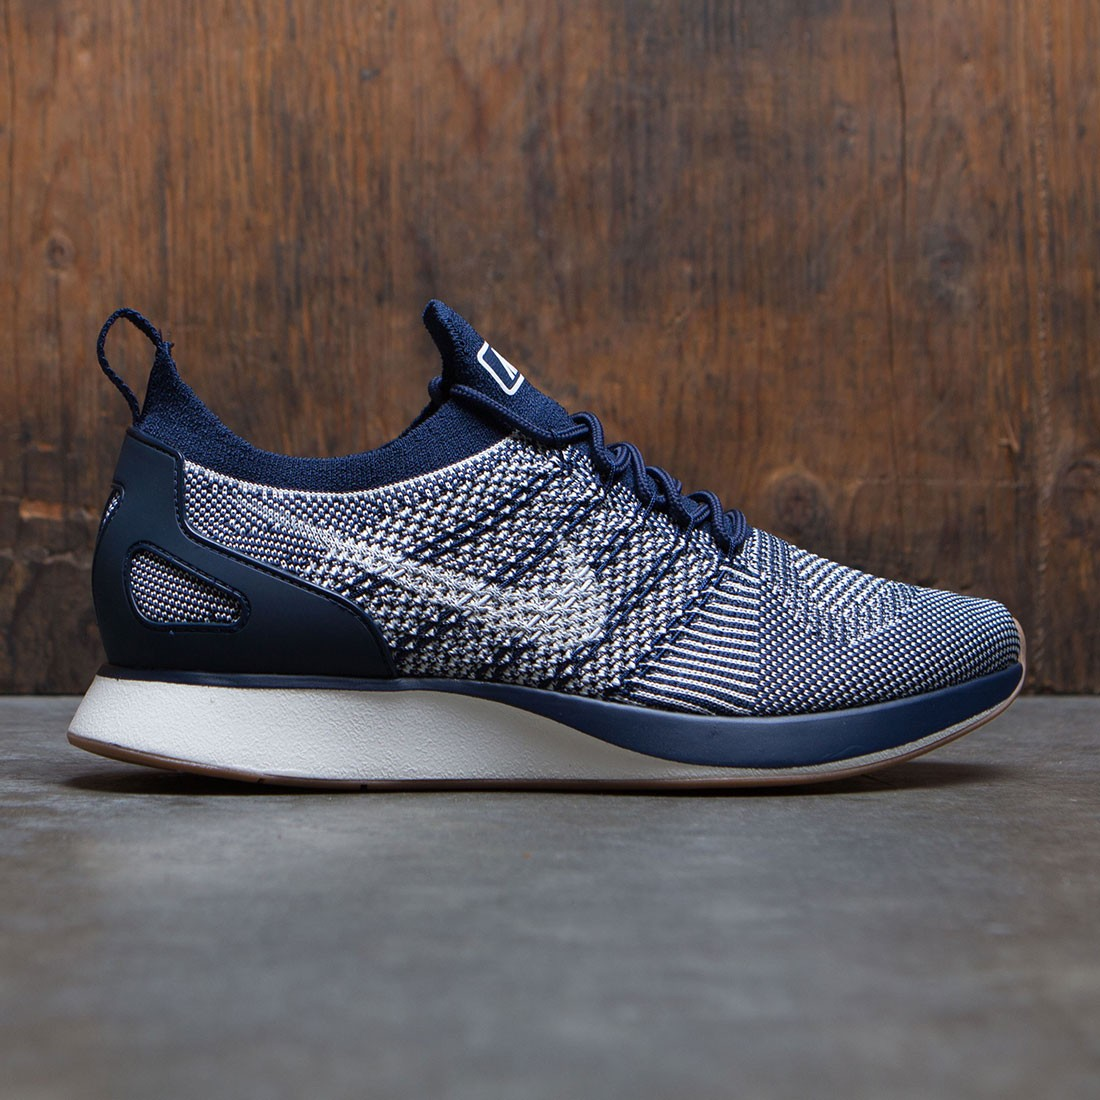 produits chauds grosses soldes marque populaire Nike Air Zoom Mariah Flyknit Racer : Nike | Discounted Shoes ...